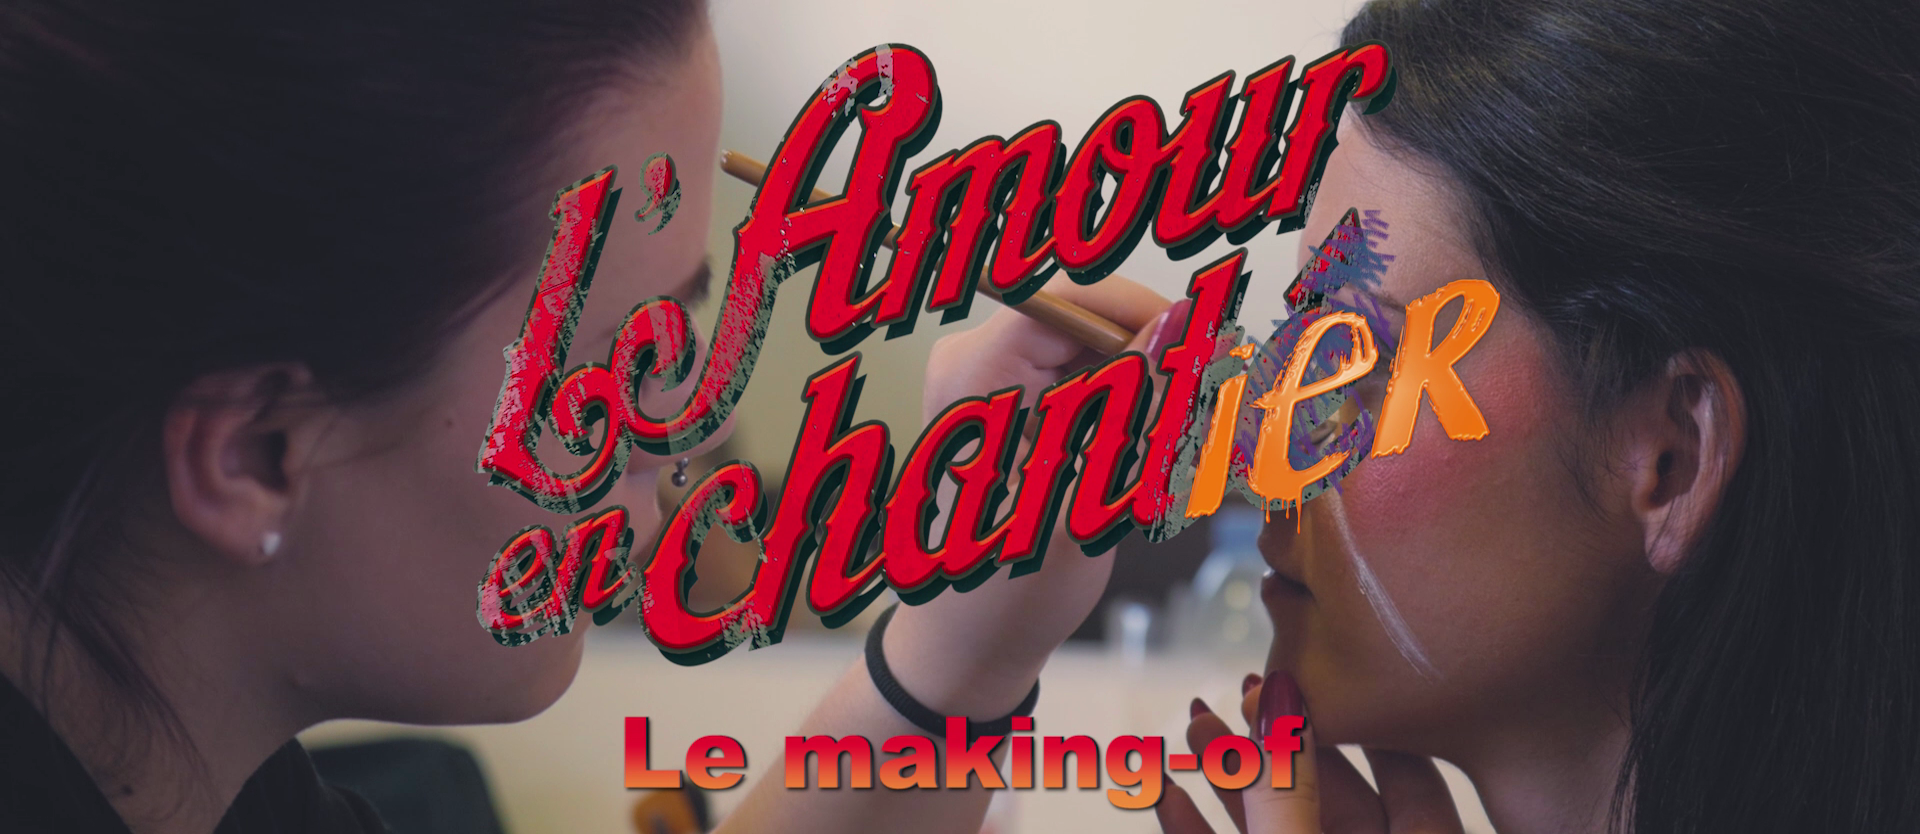 L'amour en chantier - MAKING OF